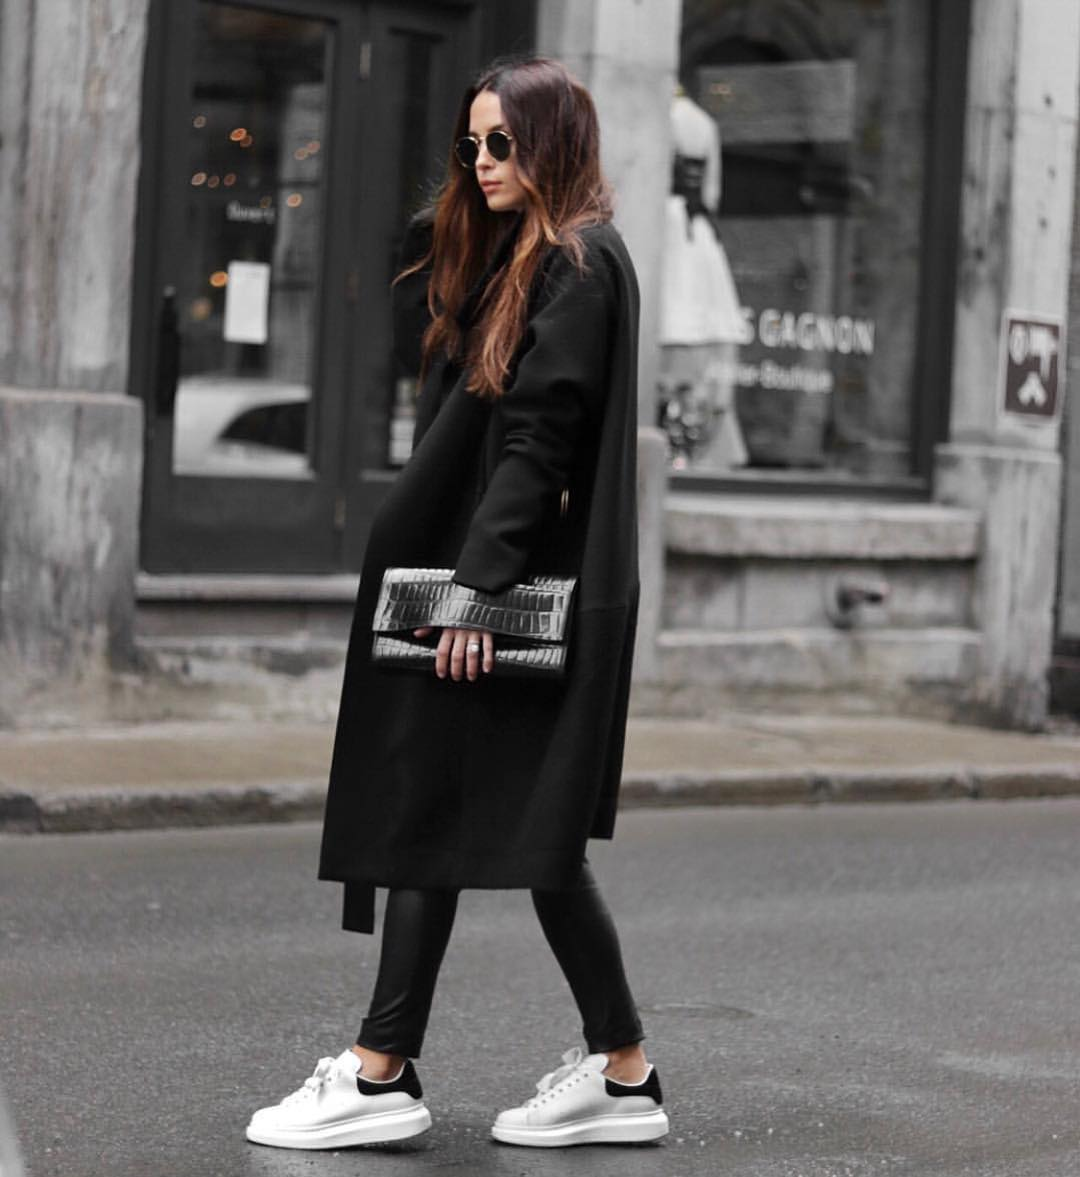 How To Style Black And White: Oversized Coat In Black And White Sneakers 2021